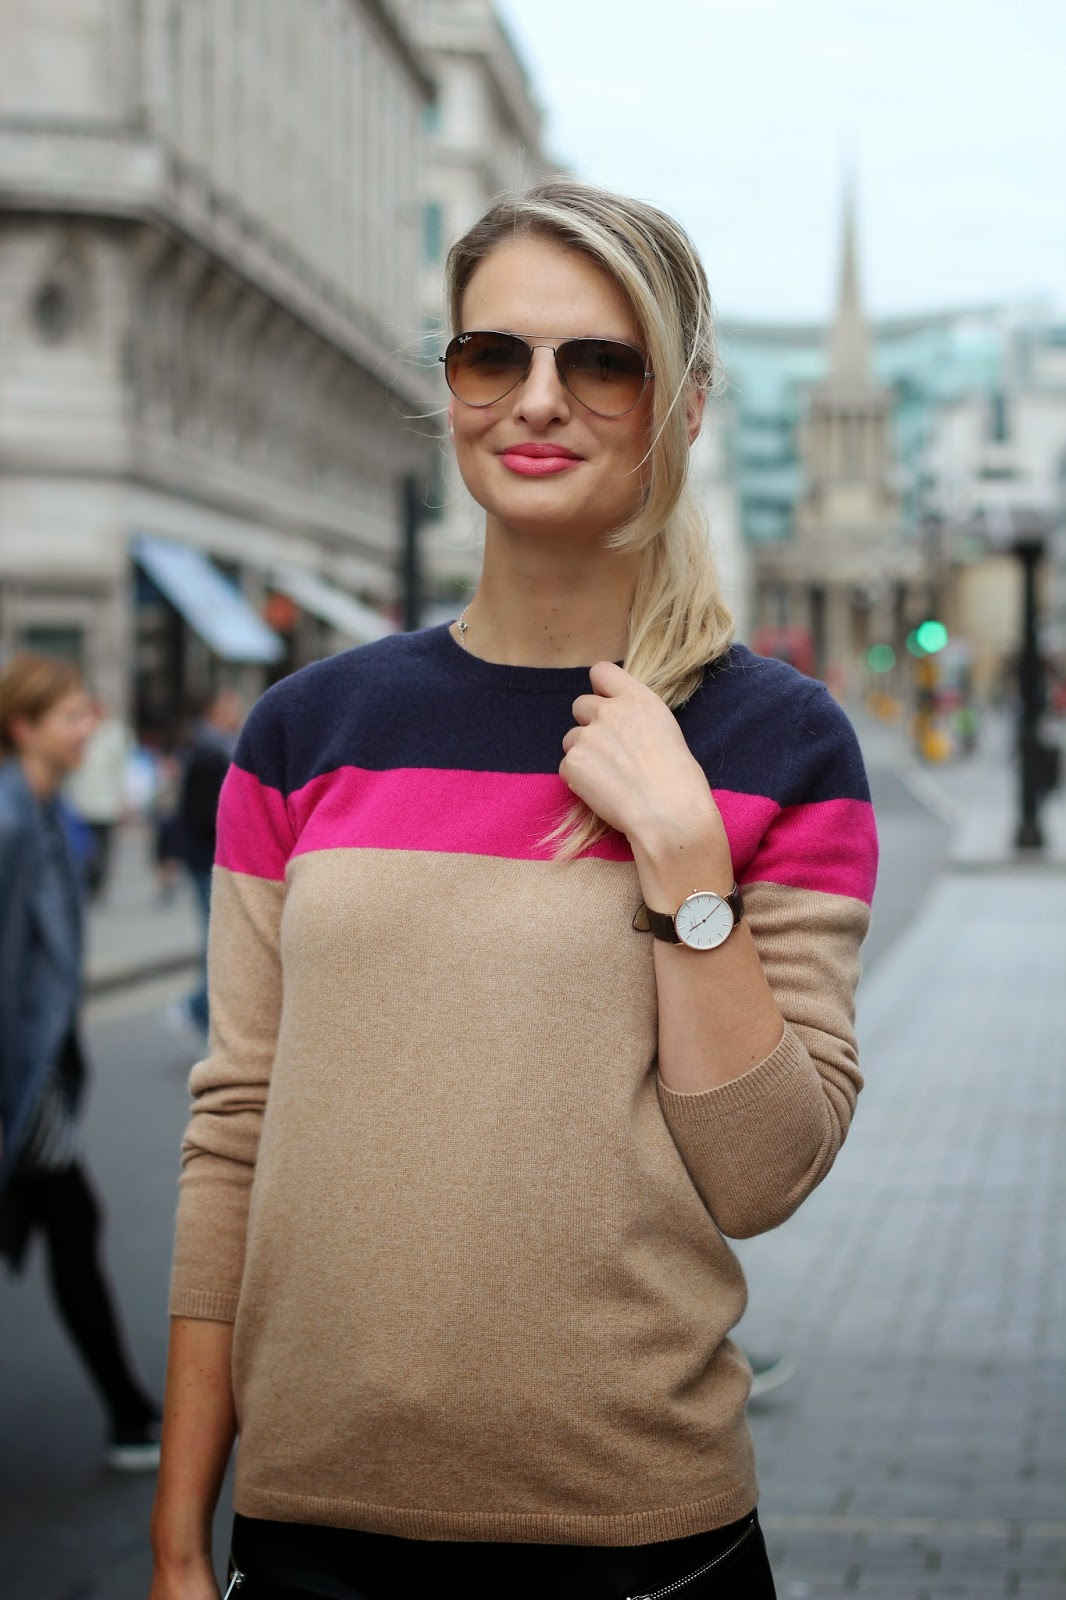 oxford circus, german blogger in london, boden cashmere jumper, block striped jumper, ray ban glasses, daniel wellington watches, daniel wellington discount code, street style, chrissabella